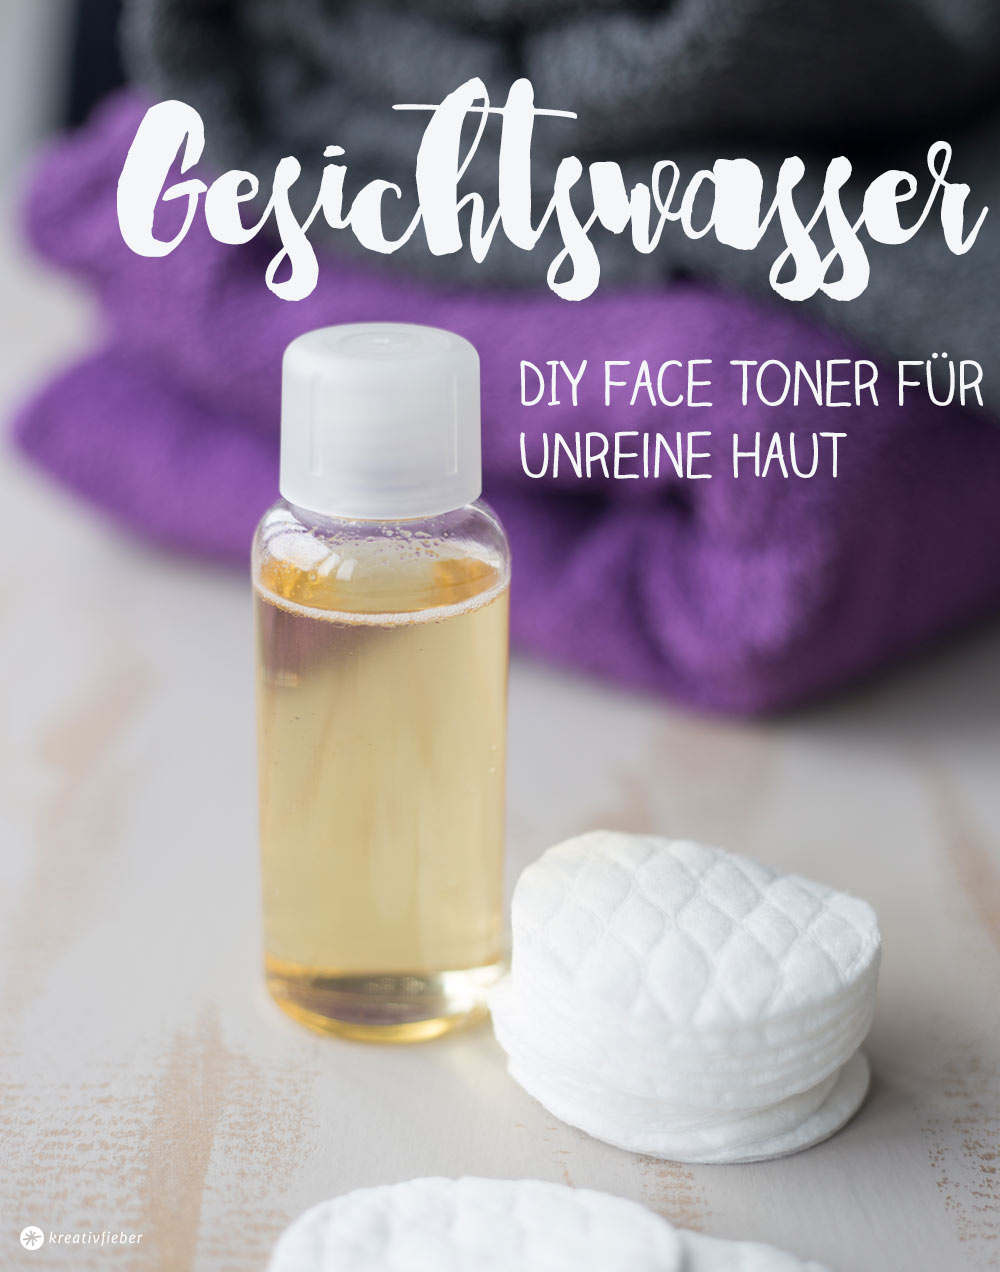 diy gesichtswasser selbermachen face toner bei unreiner haut. Black Bedroom Furniture Sets. Home Design Ideas